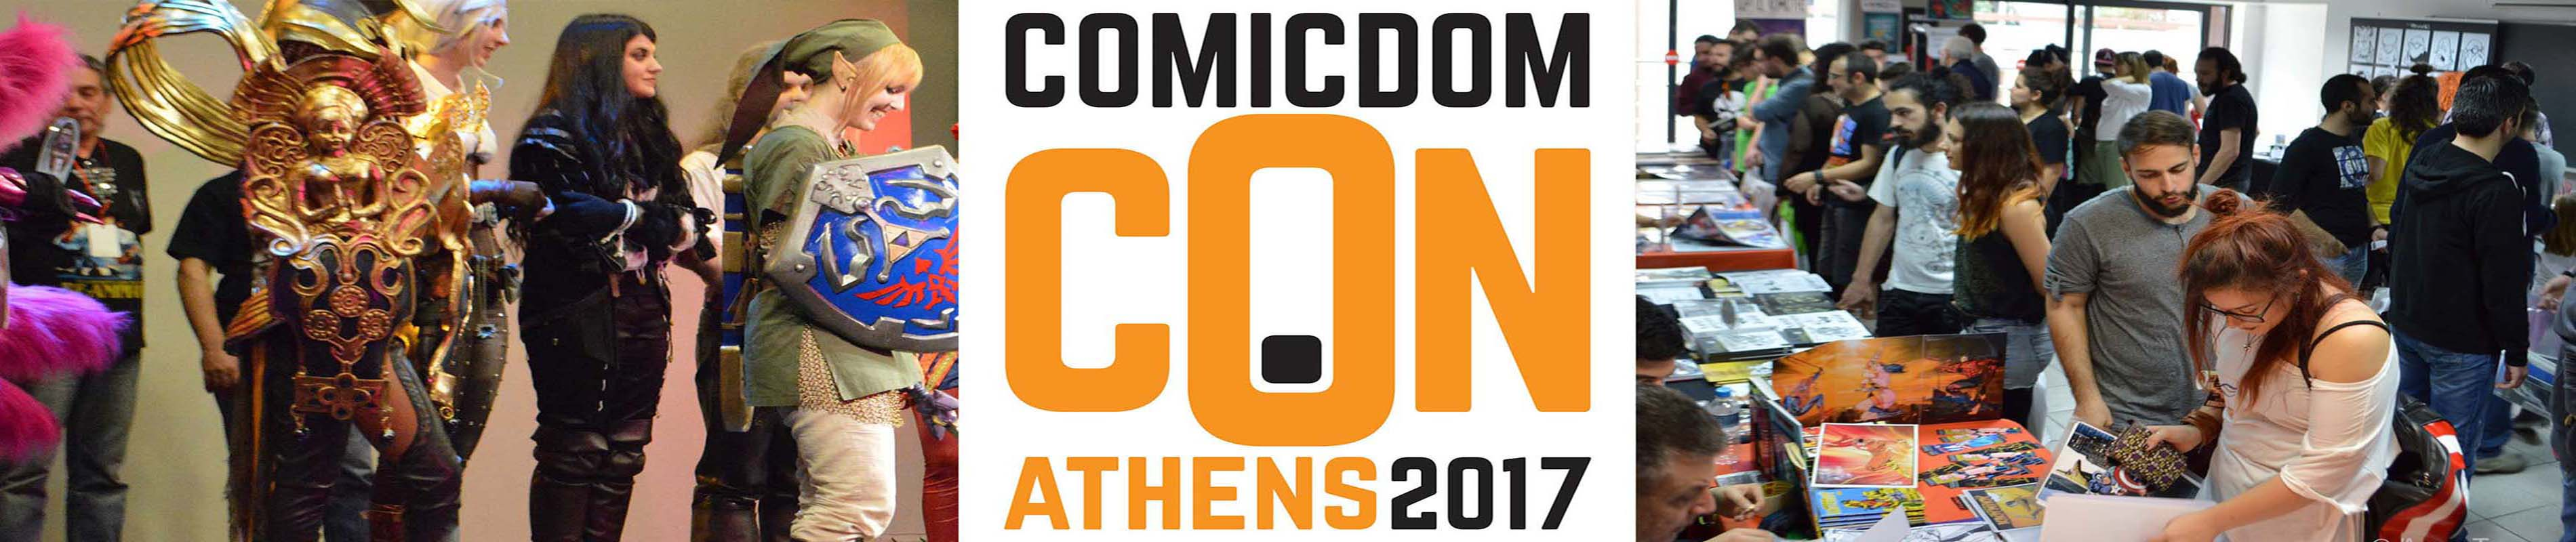 comicdom con athens 2017 website